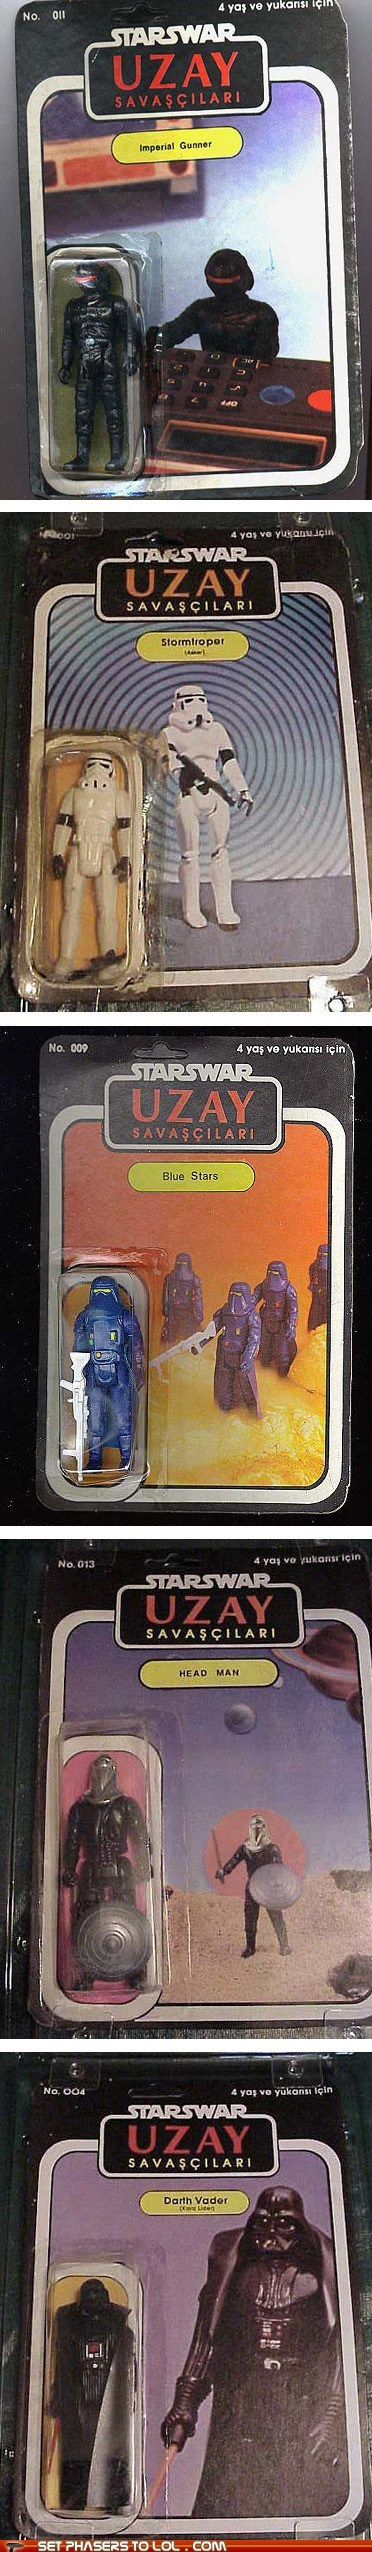 action figures bootleg cheap darth vader knock offs ripoff star wars stars war